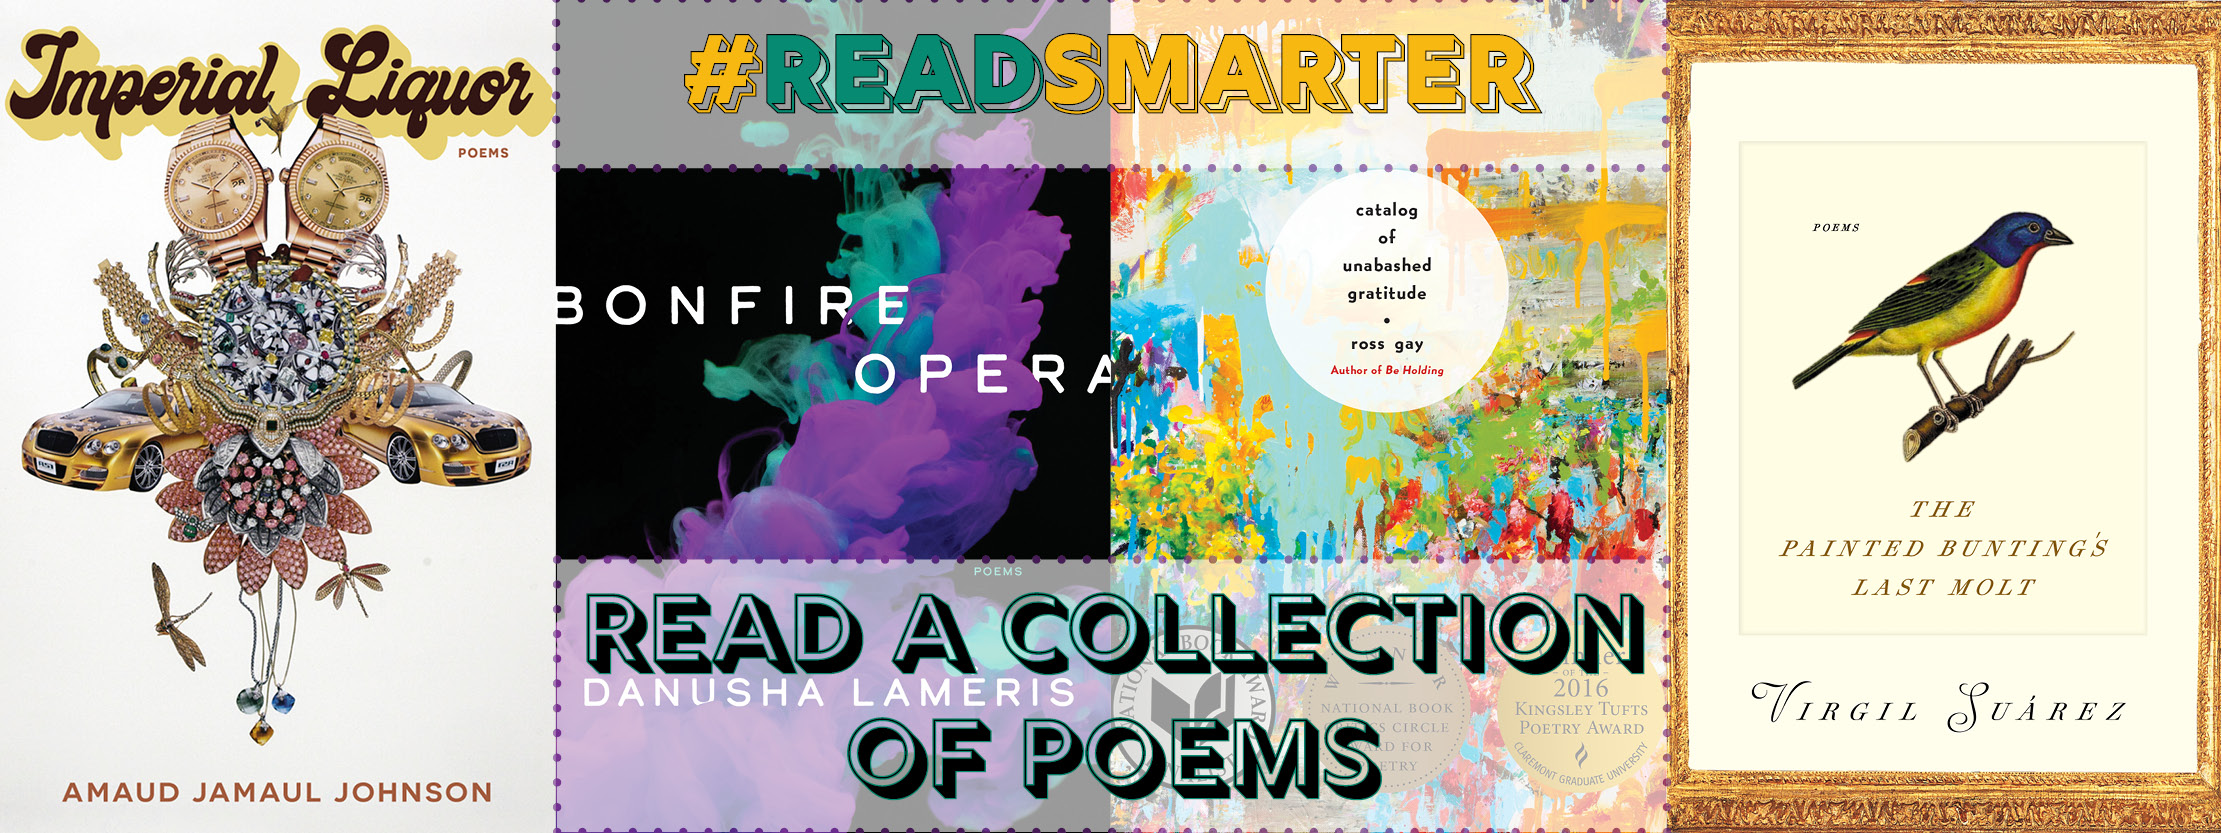 Read Smarter: Read a Collection of Poems